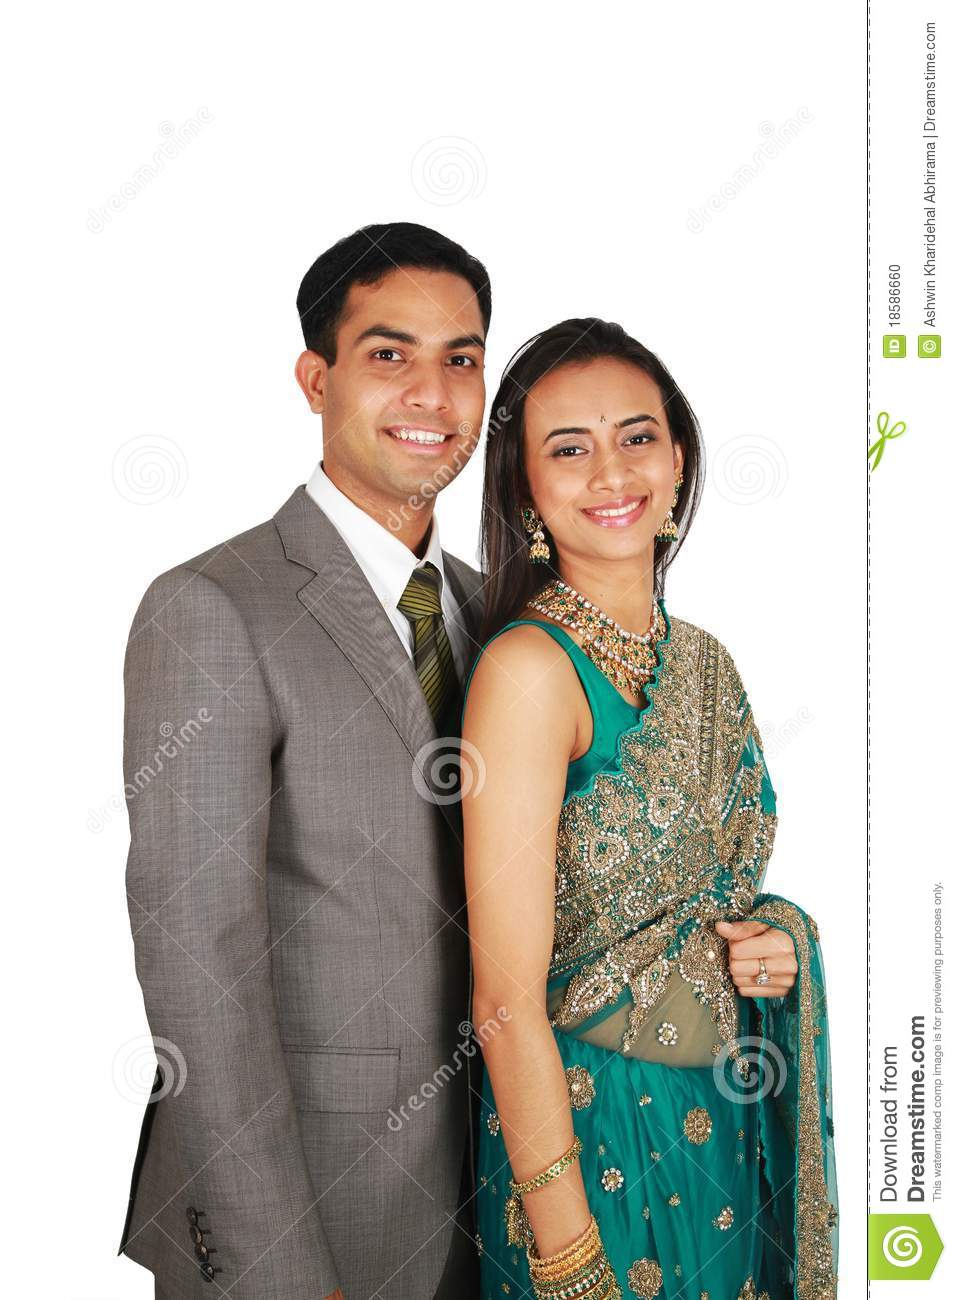 meridale hindu dating site Browse photo profiles & contact who are hindu, religion on australia's #1 dating site rsvp free to browse & join.